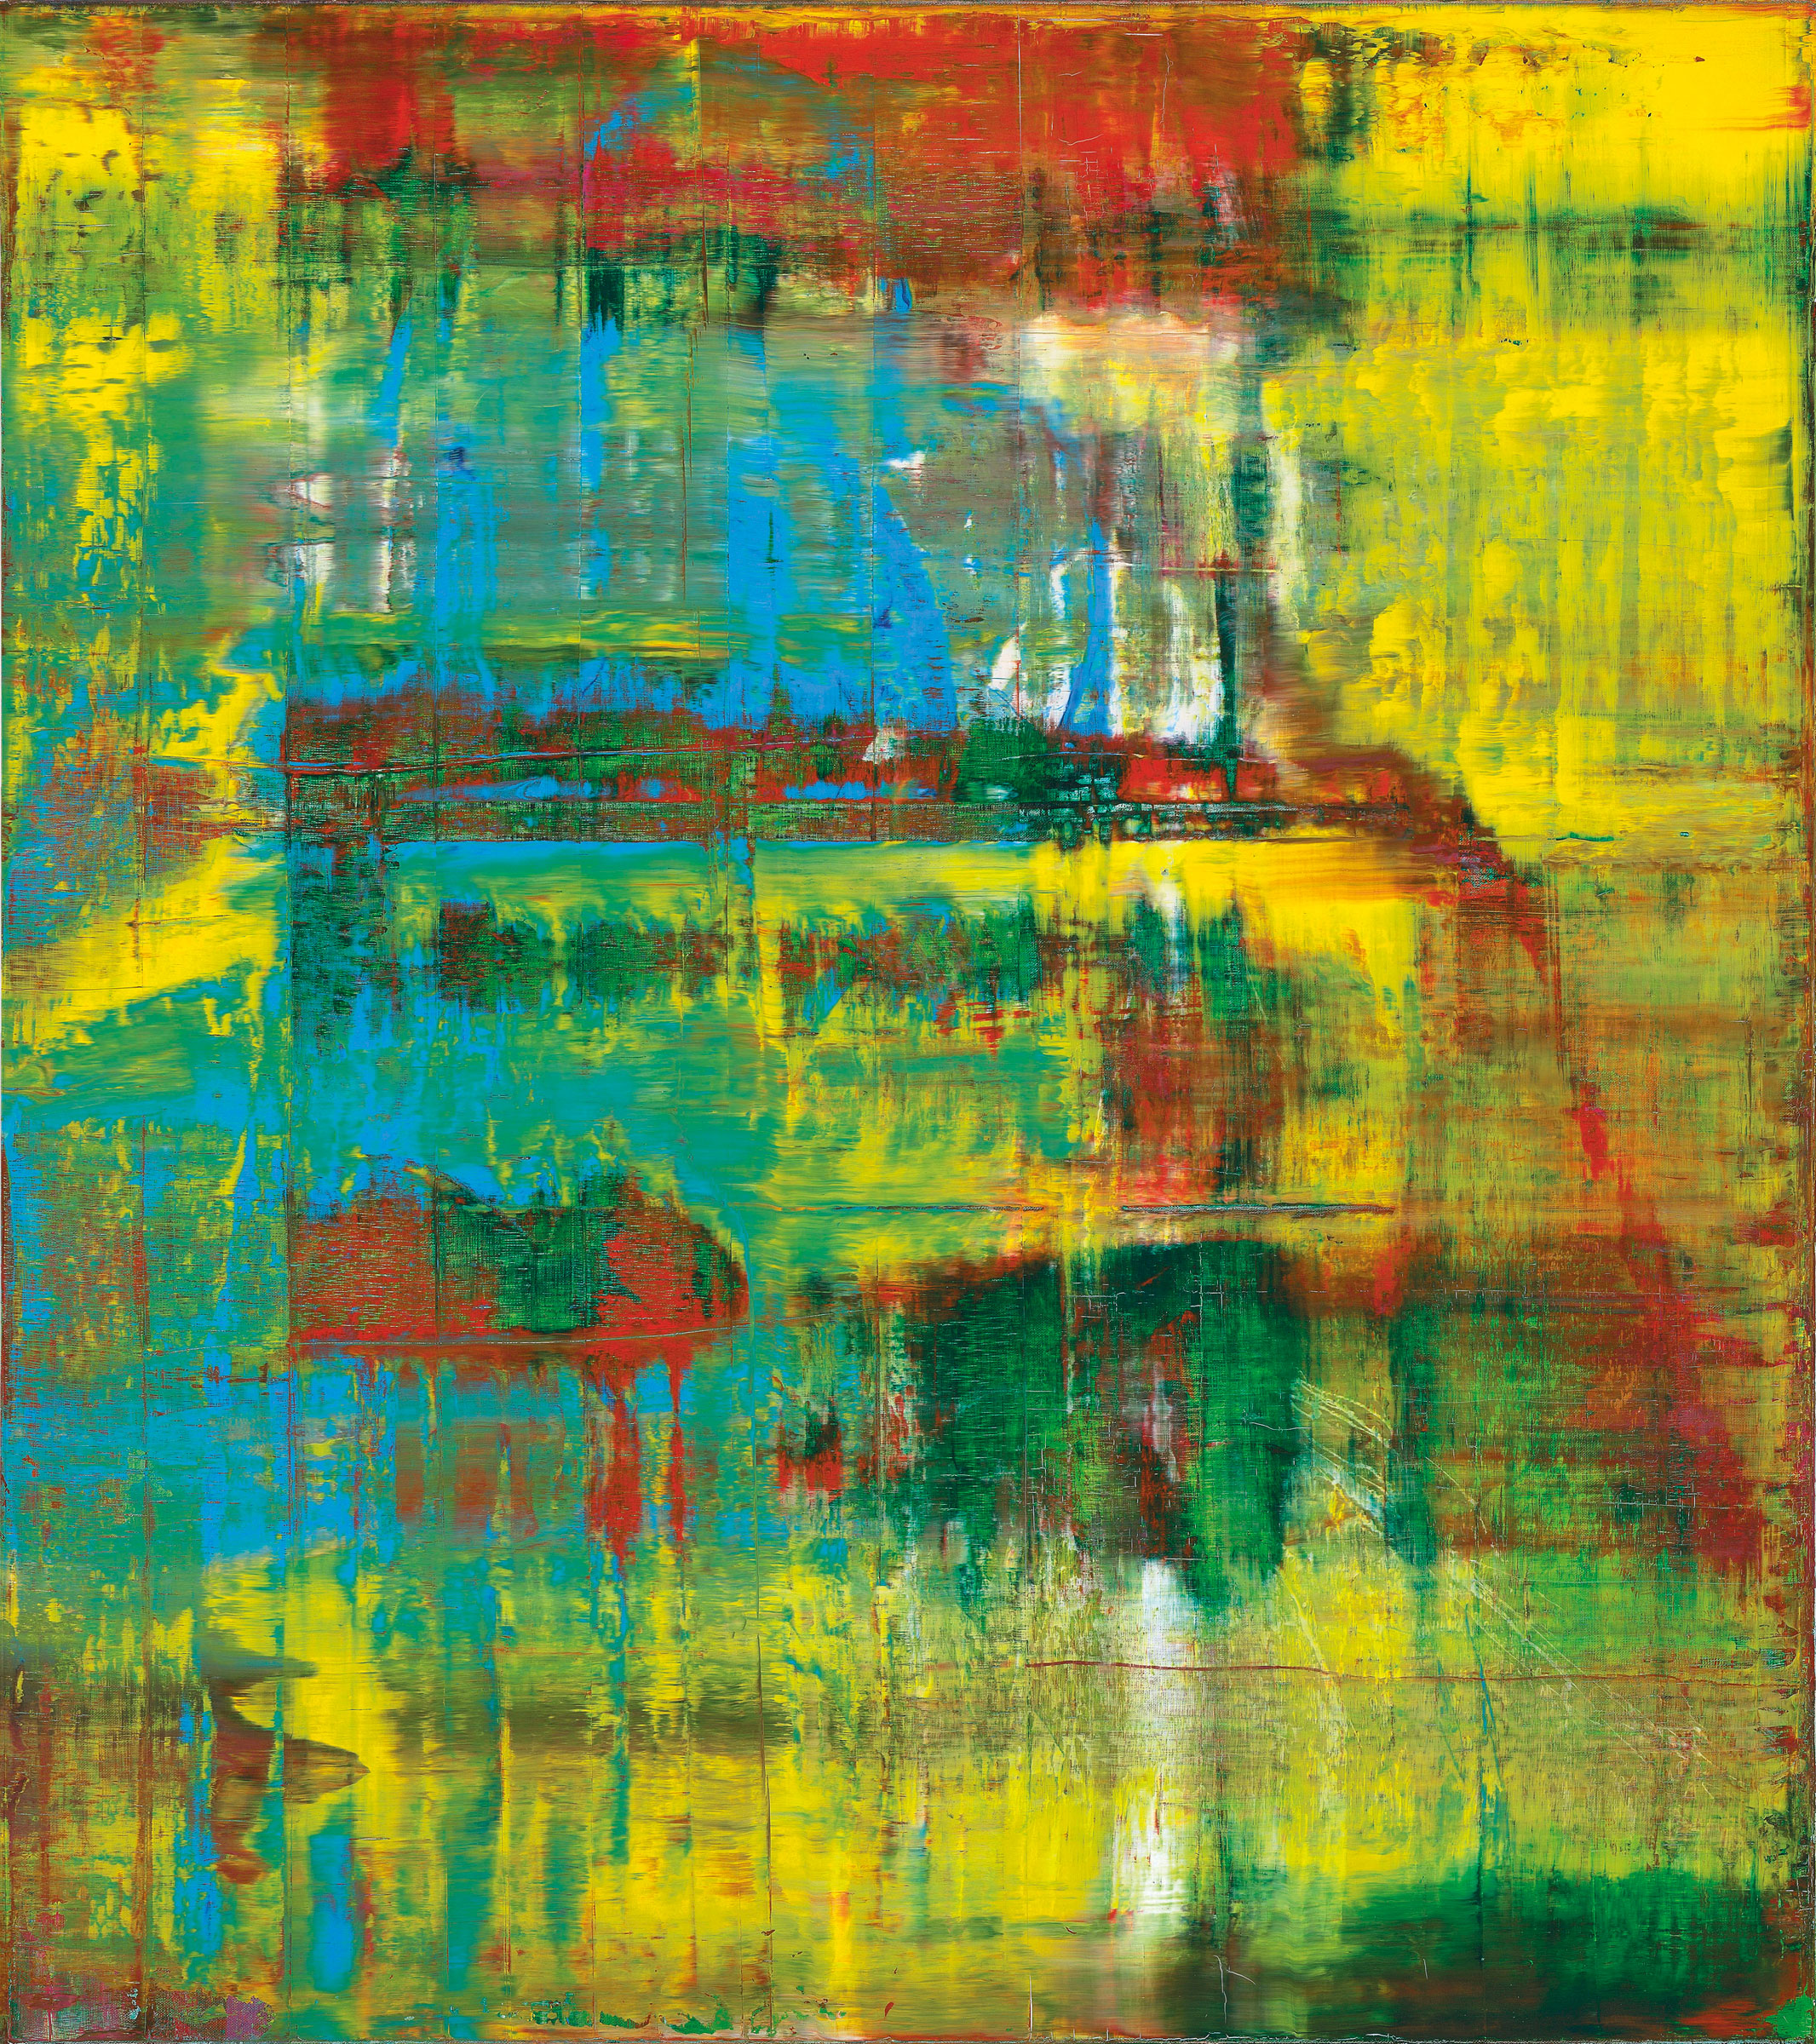 Gerhard Richter (b.  1932), Abstraktes Bild (809-2), 1994. Oil on canvas, 88½ x 78¾ in (225 x 200 cm). Estimate $18,000,000-25,000,000. This lot is offered in Post-War & Contemporary Art Evening Sale  on 15 November 2016 at Christie's in New York, Rockefeller Plaza